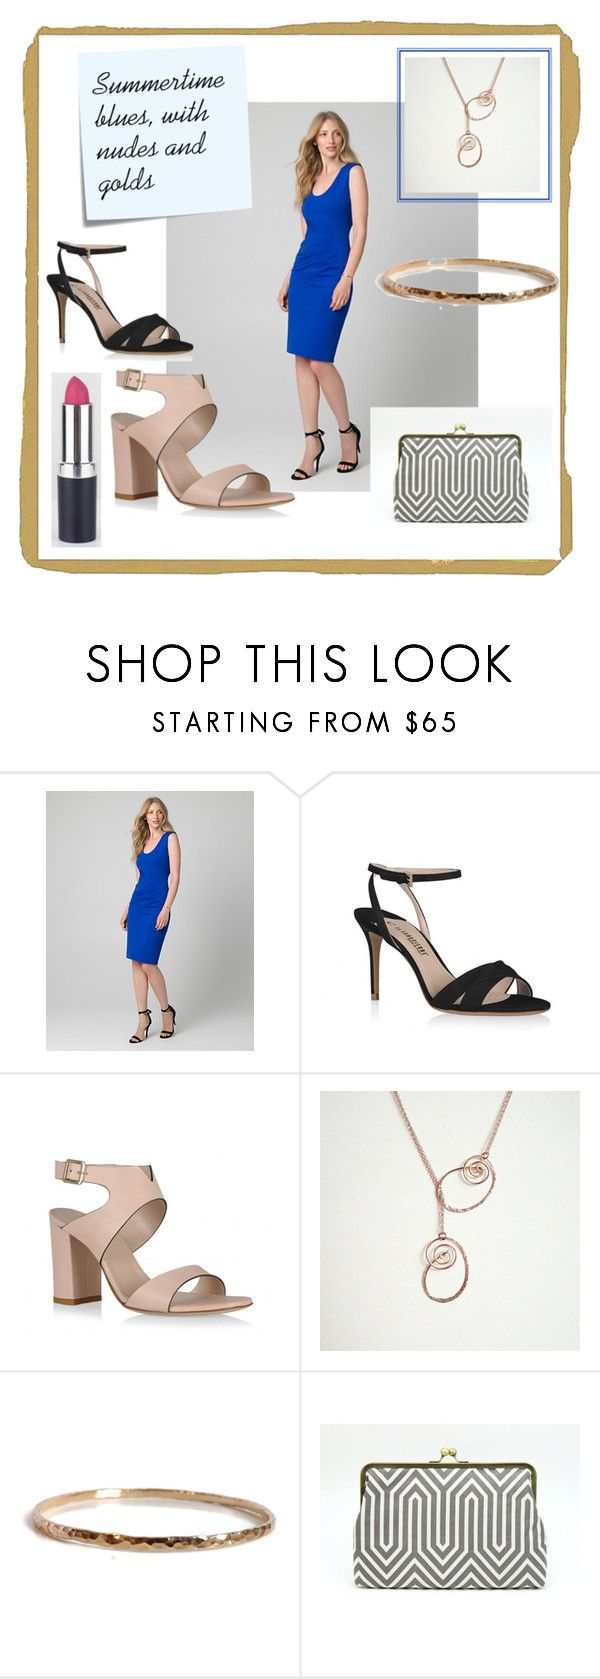 """Wedding Fashion: Summertime Blues"" by mapestomountains on Polyvore featuring Le Chateau, Post-It and Marni"